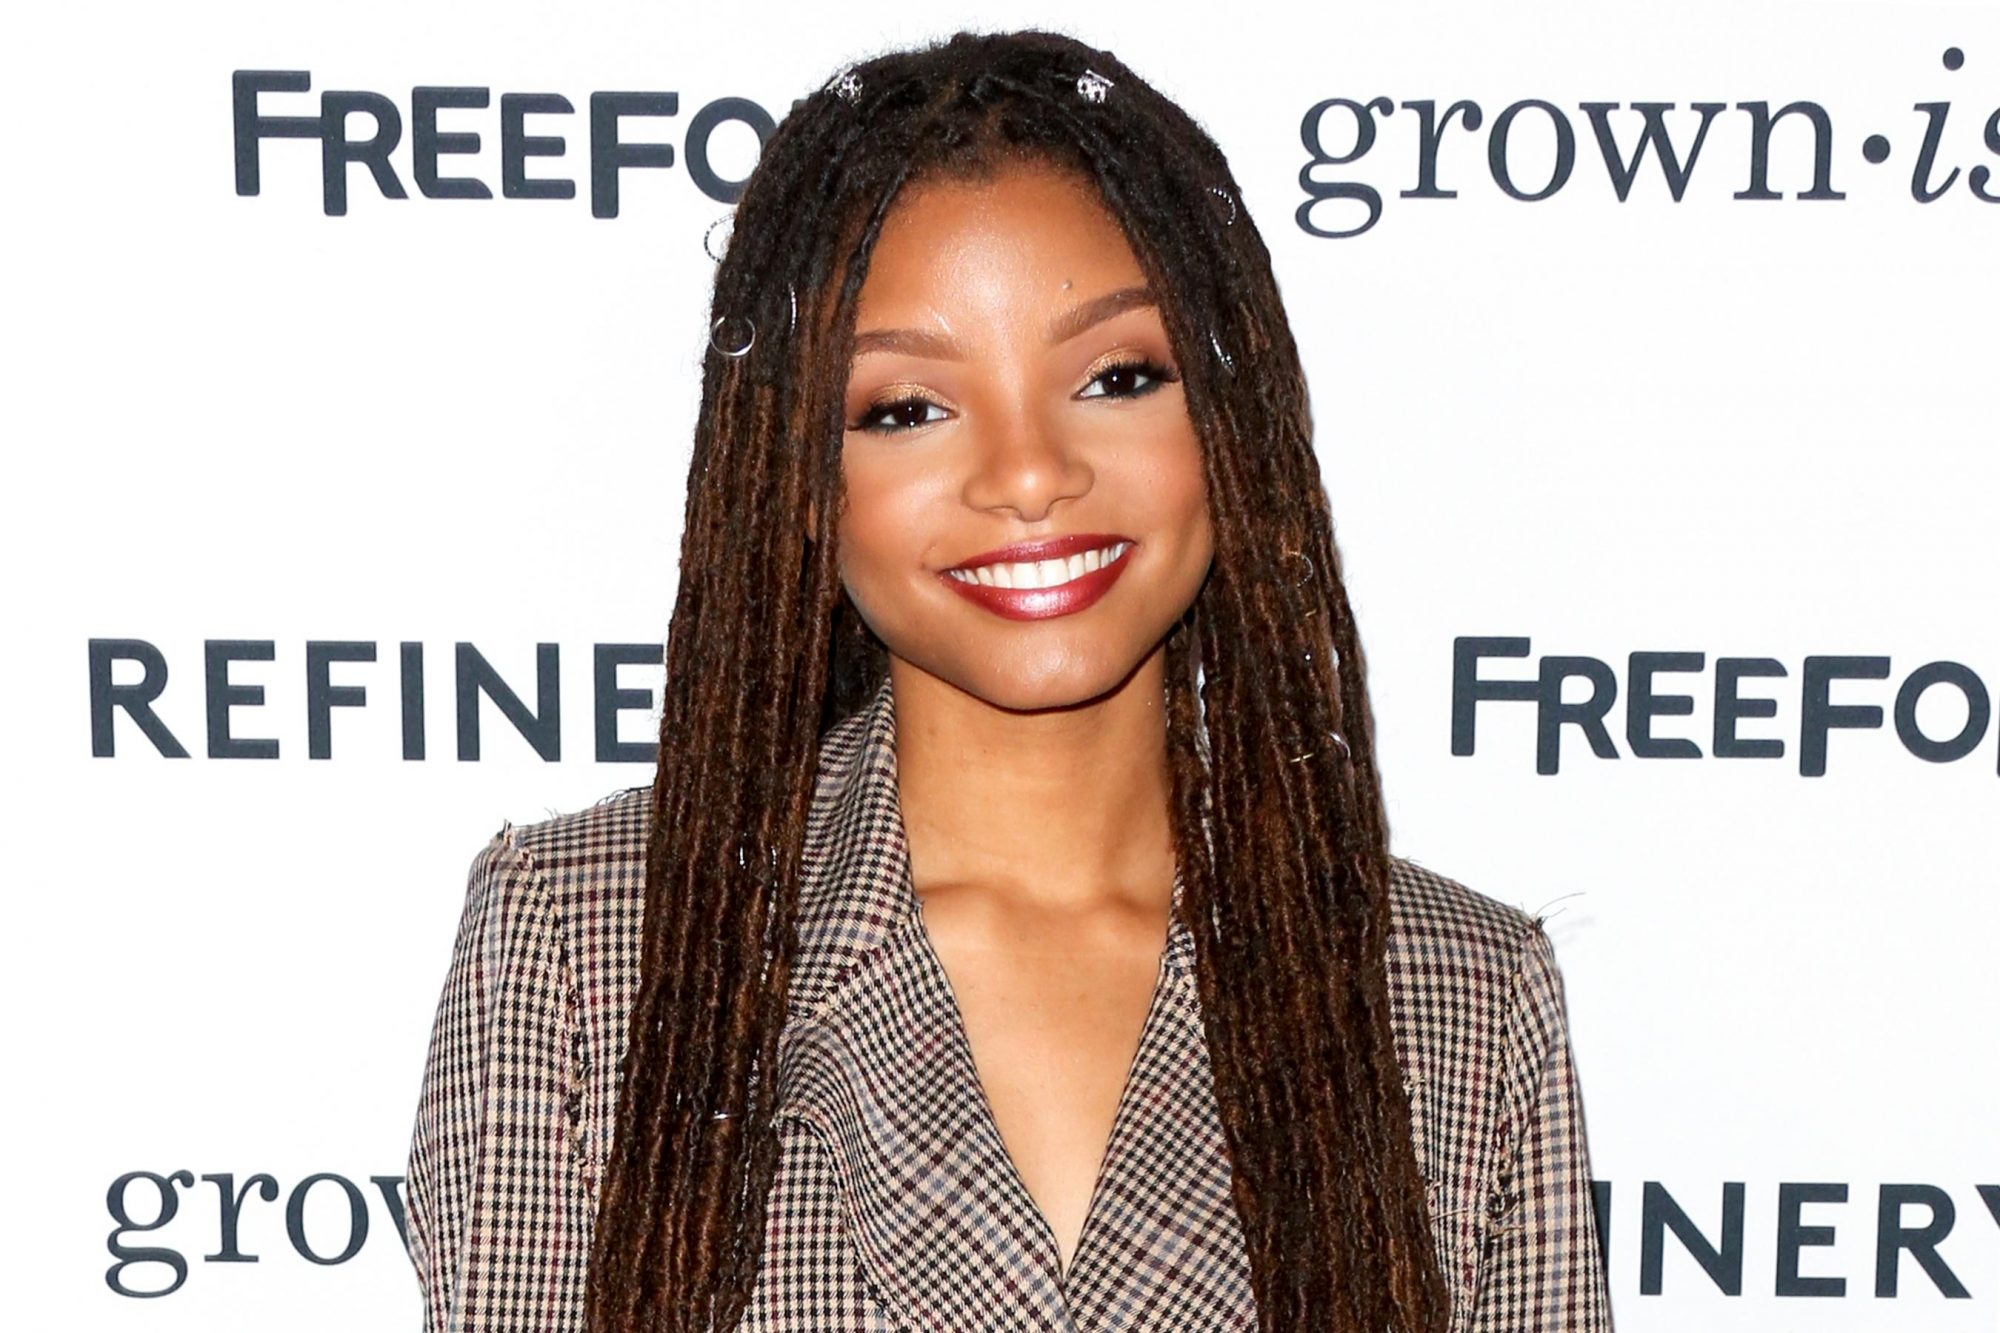 "HOLLYWOOD, CA - DECEMBER 13: Actress Halle Bailey attends the premiere of ABC's ""Grown-ish"" on December 13, 2017 in Hollywood, California. (Photo by Paul Archuleta/FilmMagic)"